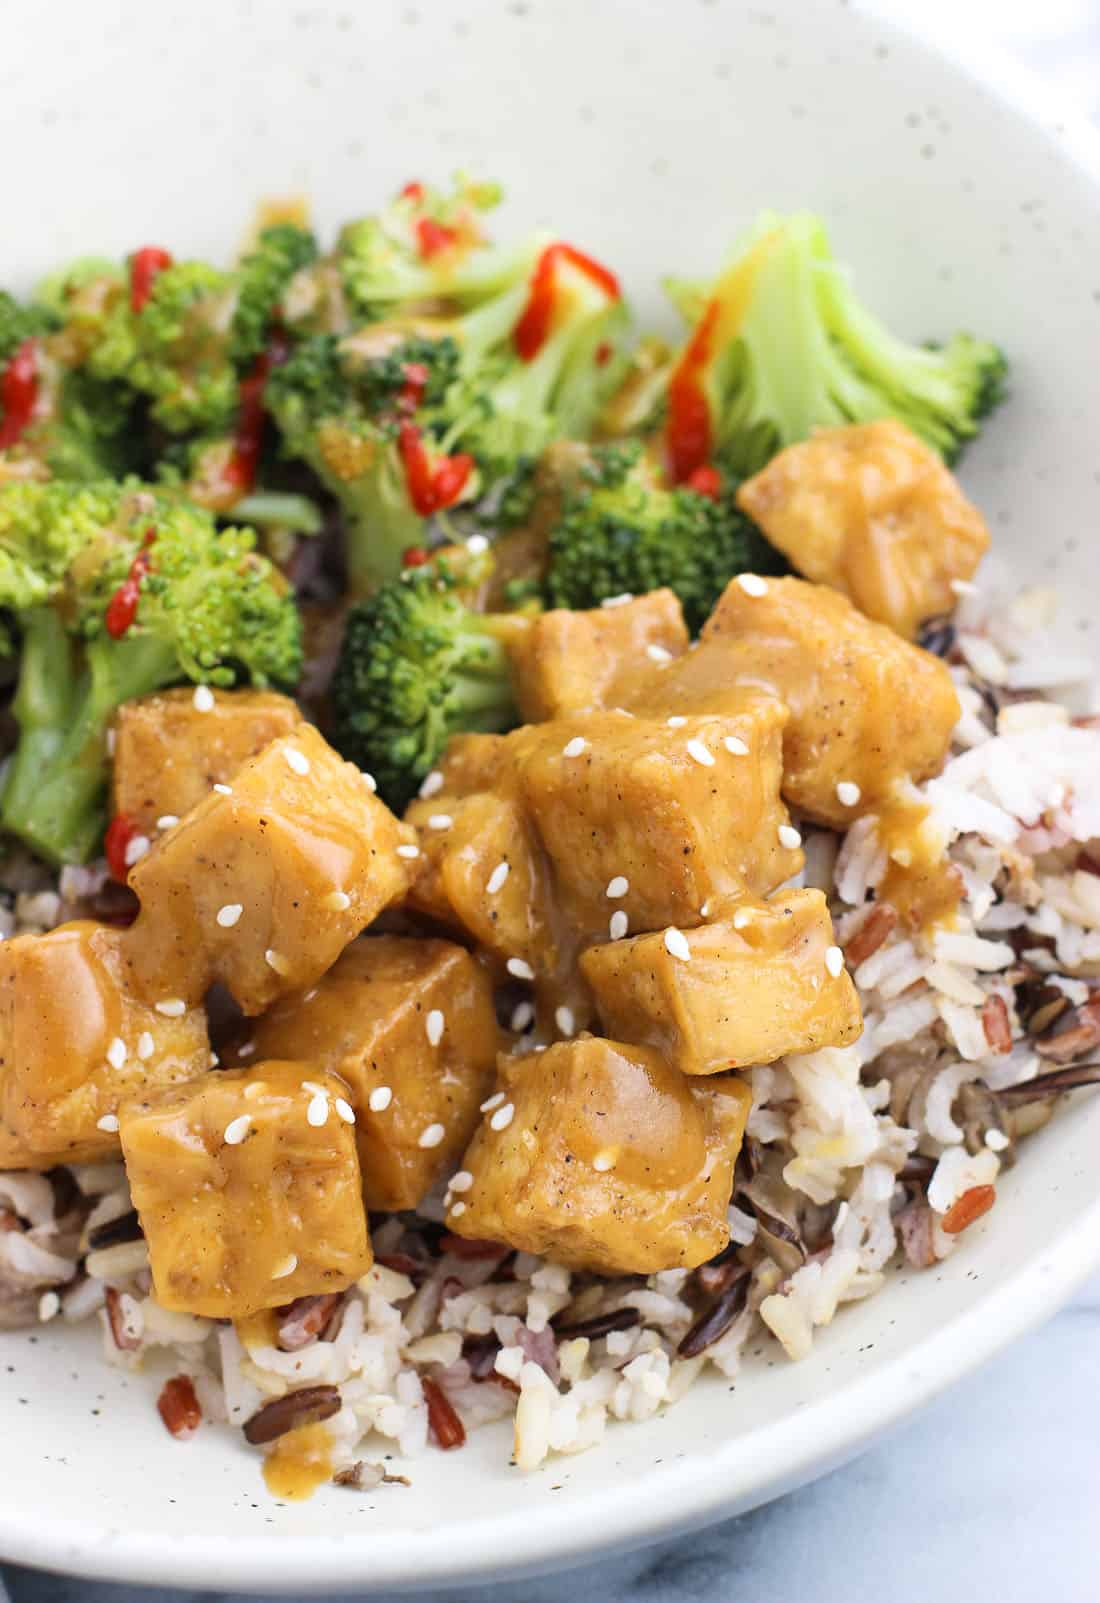 Tofu tossed in ginger sauce served over rice in a dinner bowl with a side of sriracha-drizzled broccoli